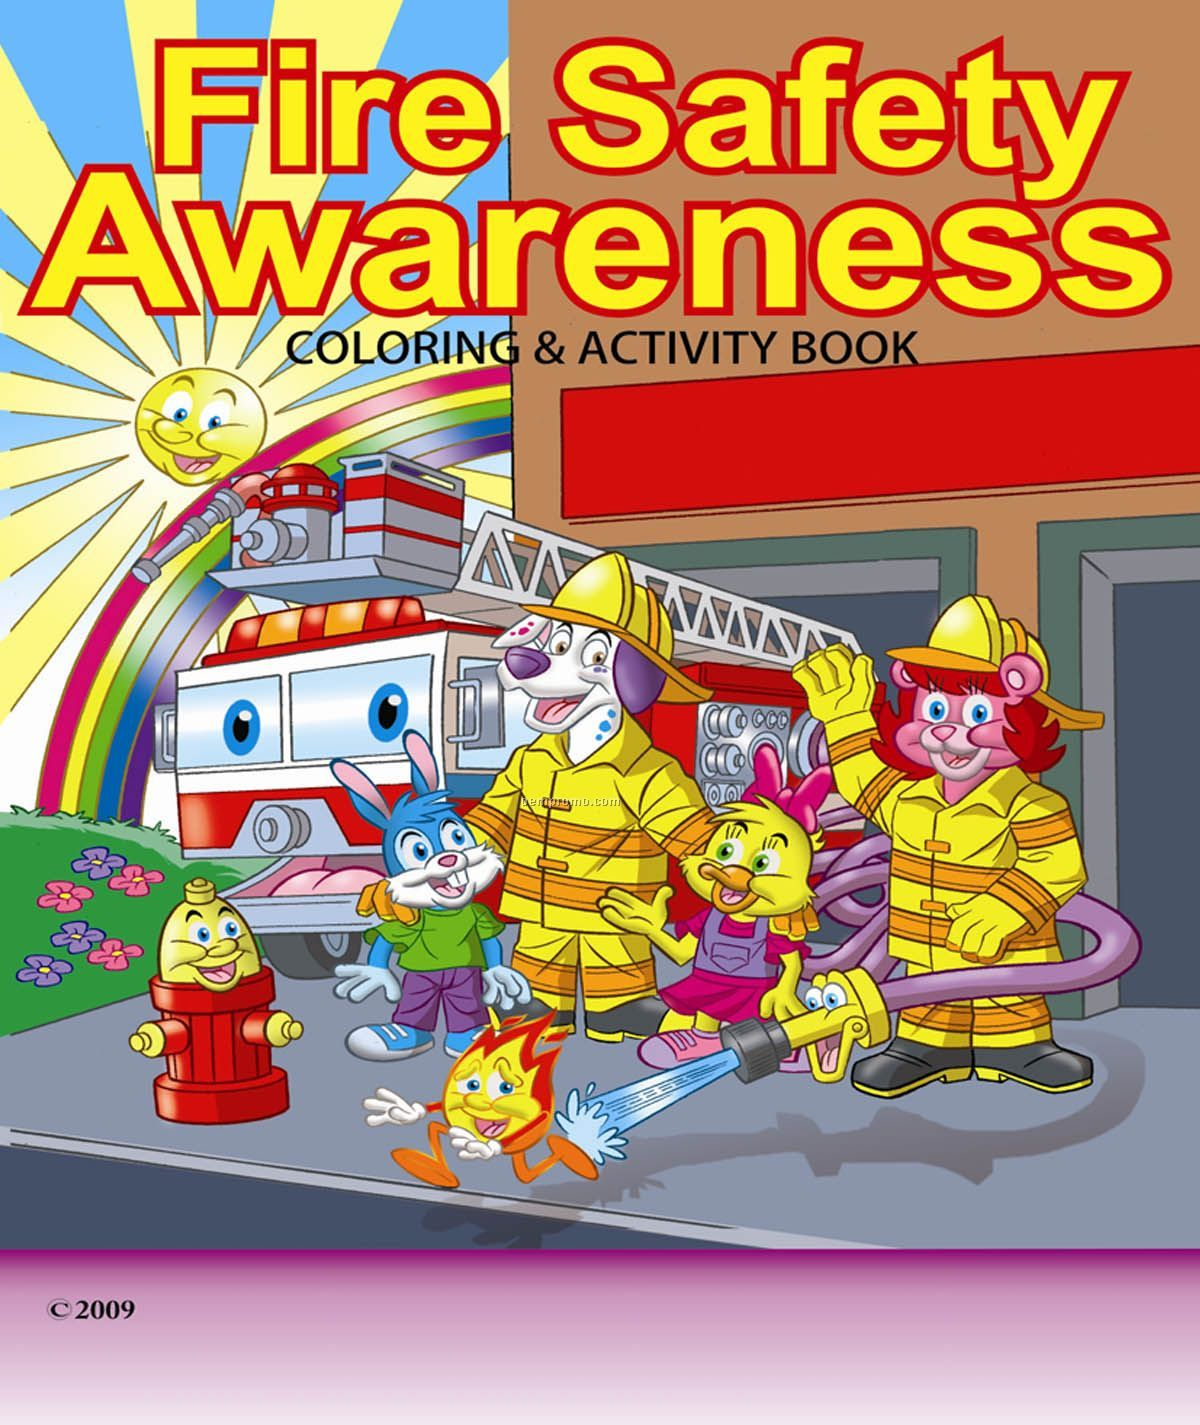 1200x1425 Fire Safety Awareness Children's Coloring And Activity Book,china